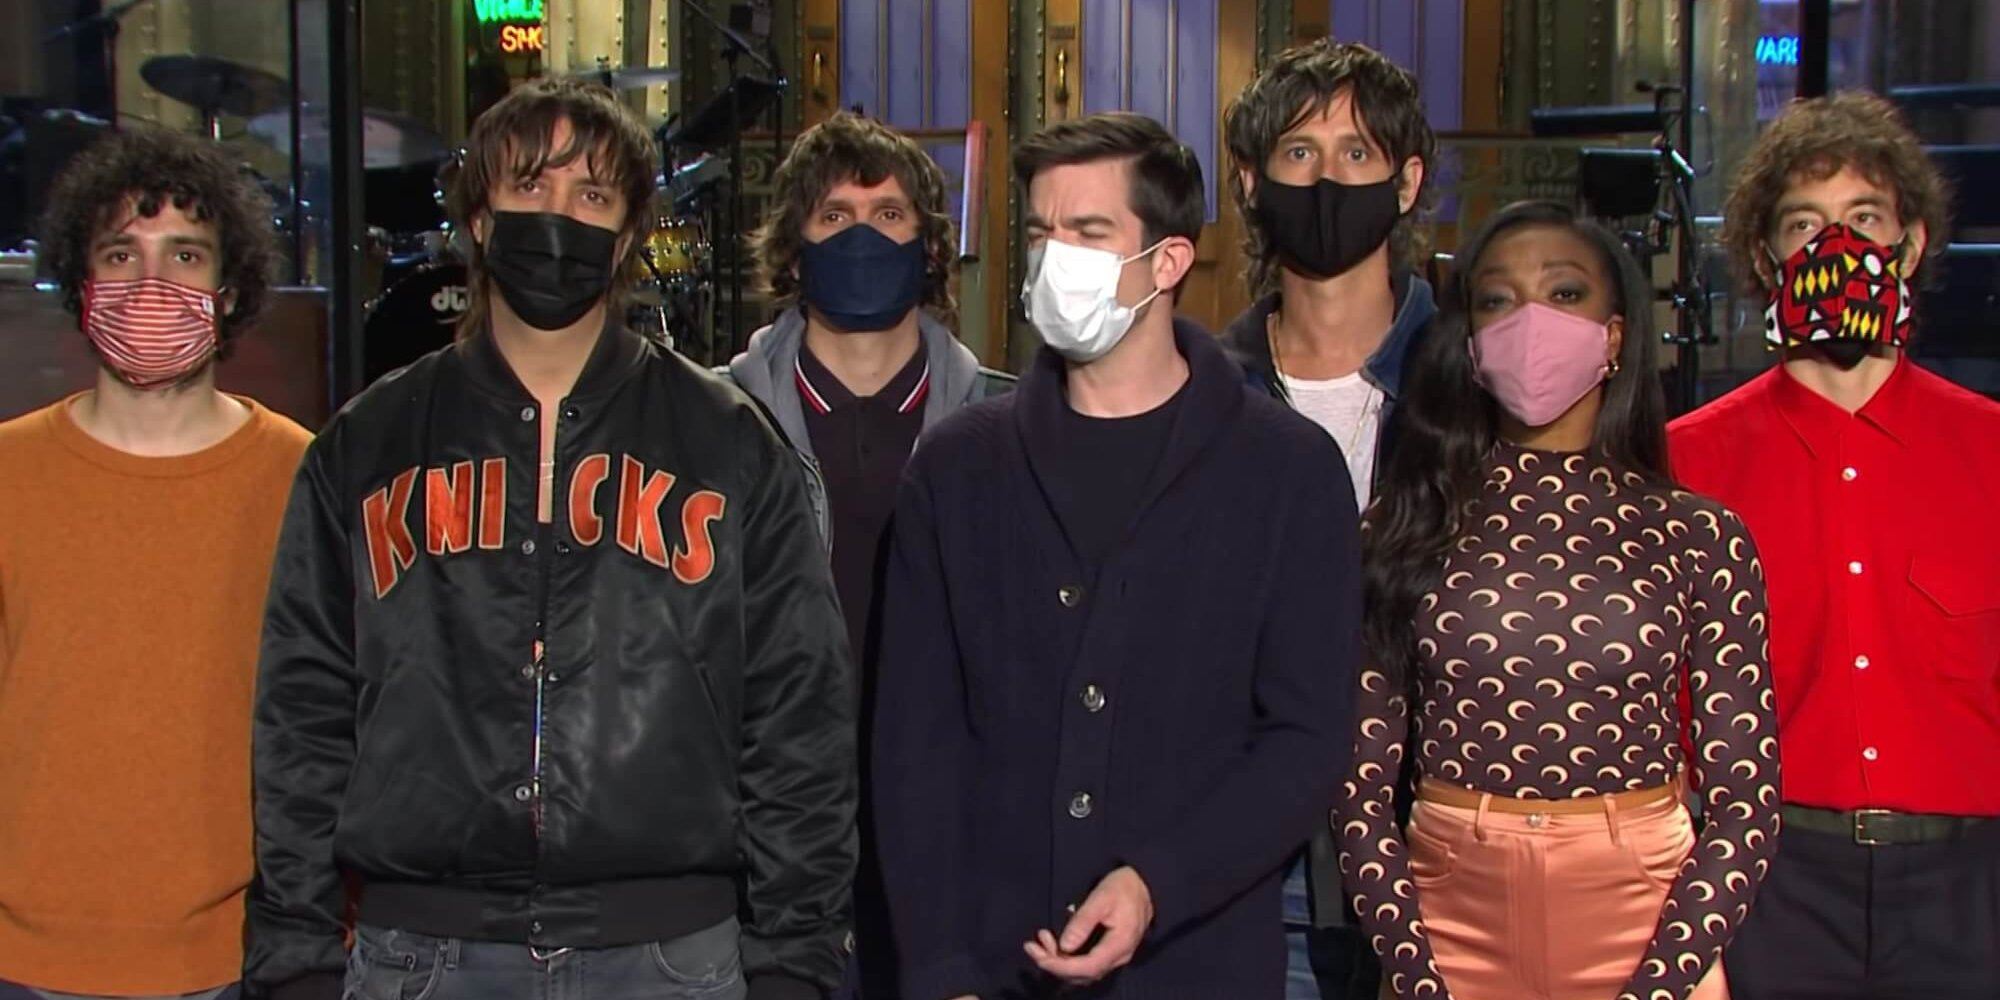 ¡Los Strokes reaparecen en Saturday Nigh Live! Mirá el video/adelato